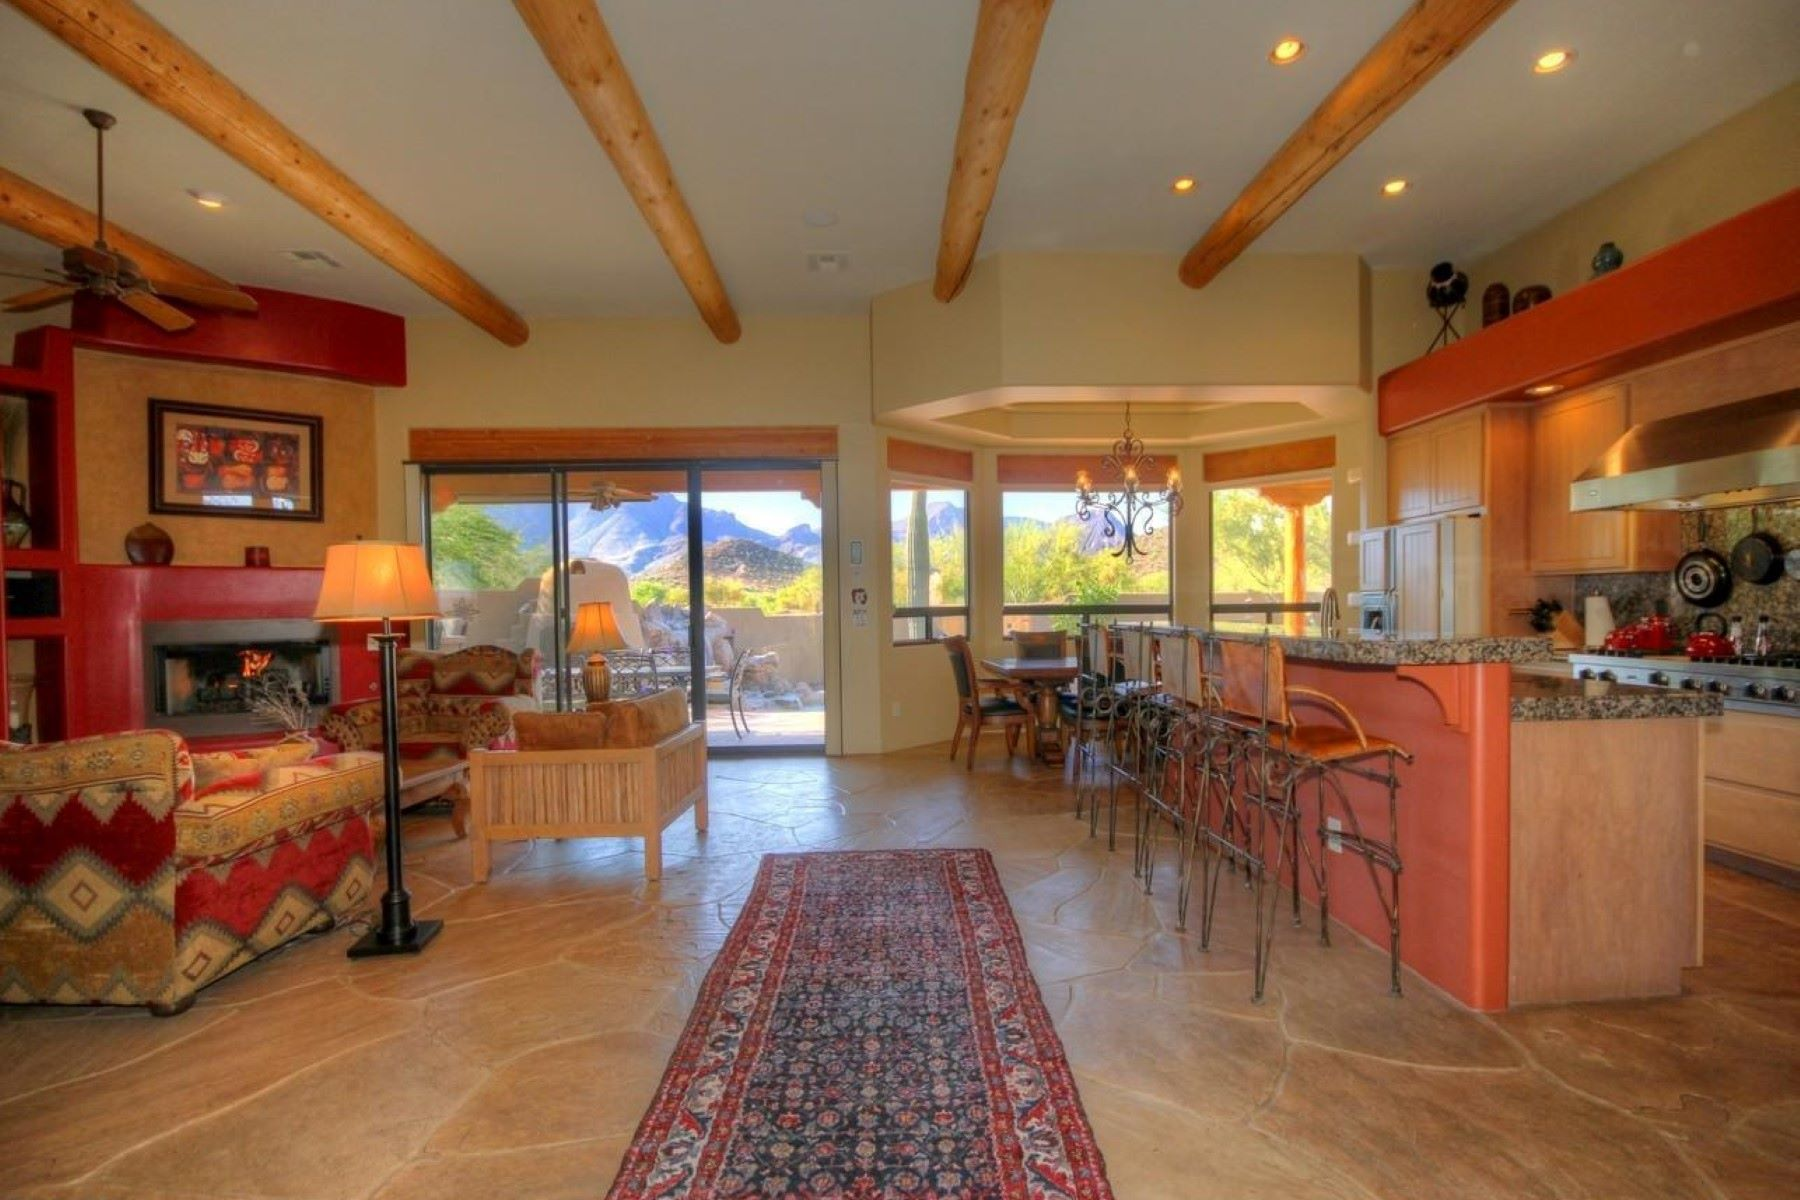 Villa per Vendita alle ore Charming home in Cave Creek 5725 E Morning Star RD Cave Creek, Arizona, 85331 Stati Uniti